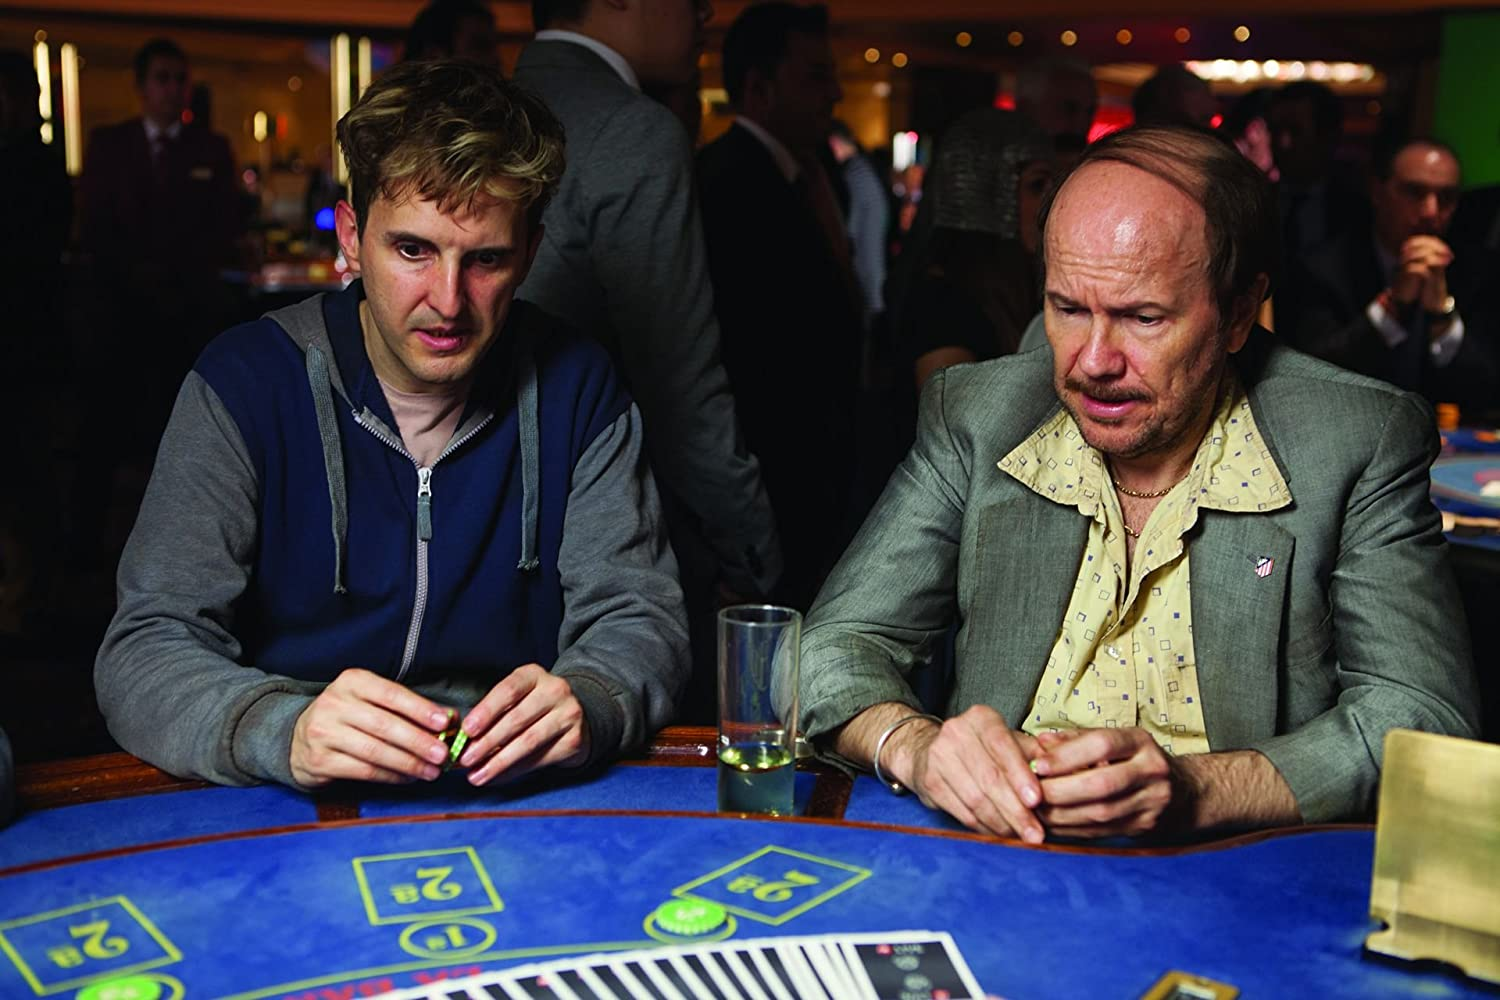 Amazon.com: Torrente 5: Operation Eurovegas ( Torrente V: Misión Eurovegas  ) ( Torrente Five: Operation Euro vegas ) [ NON-USA FORMAT, PAL, Reg.2  Import - Spain ]: Alec Baldwin, Santiago Segura, Neus